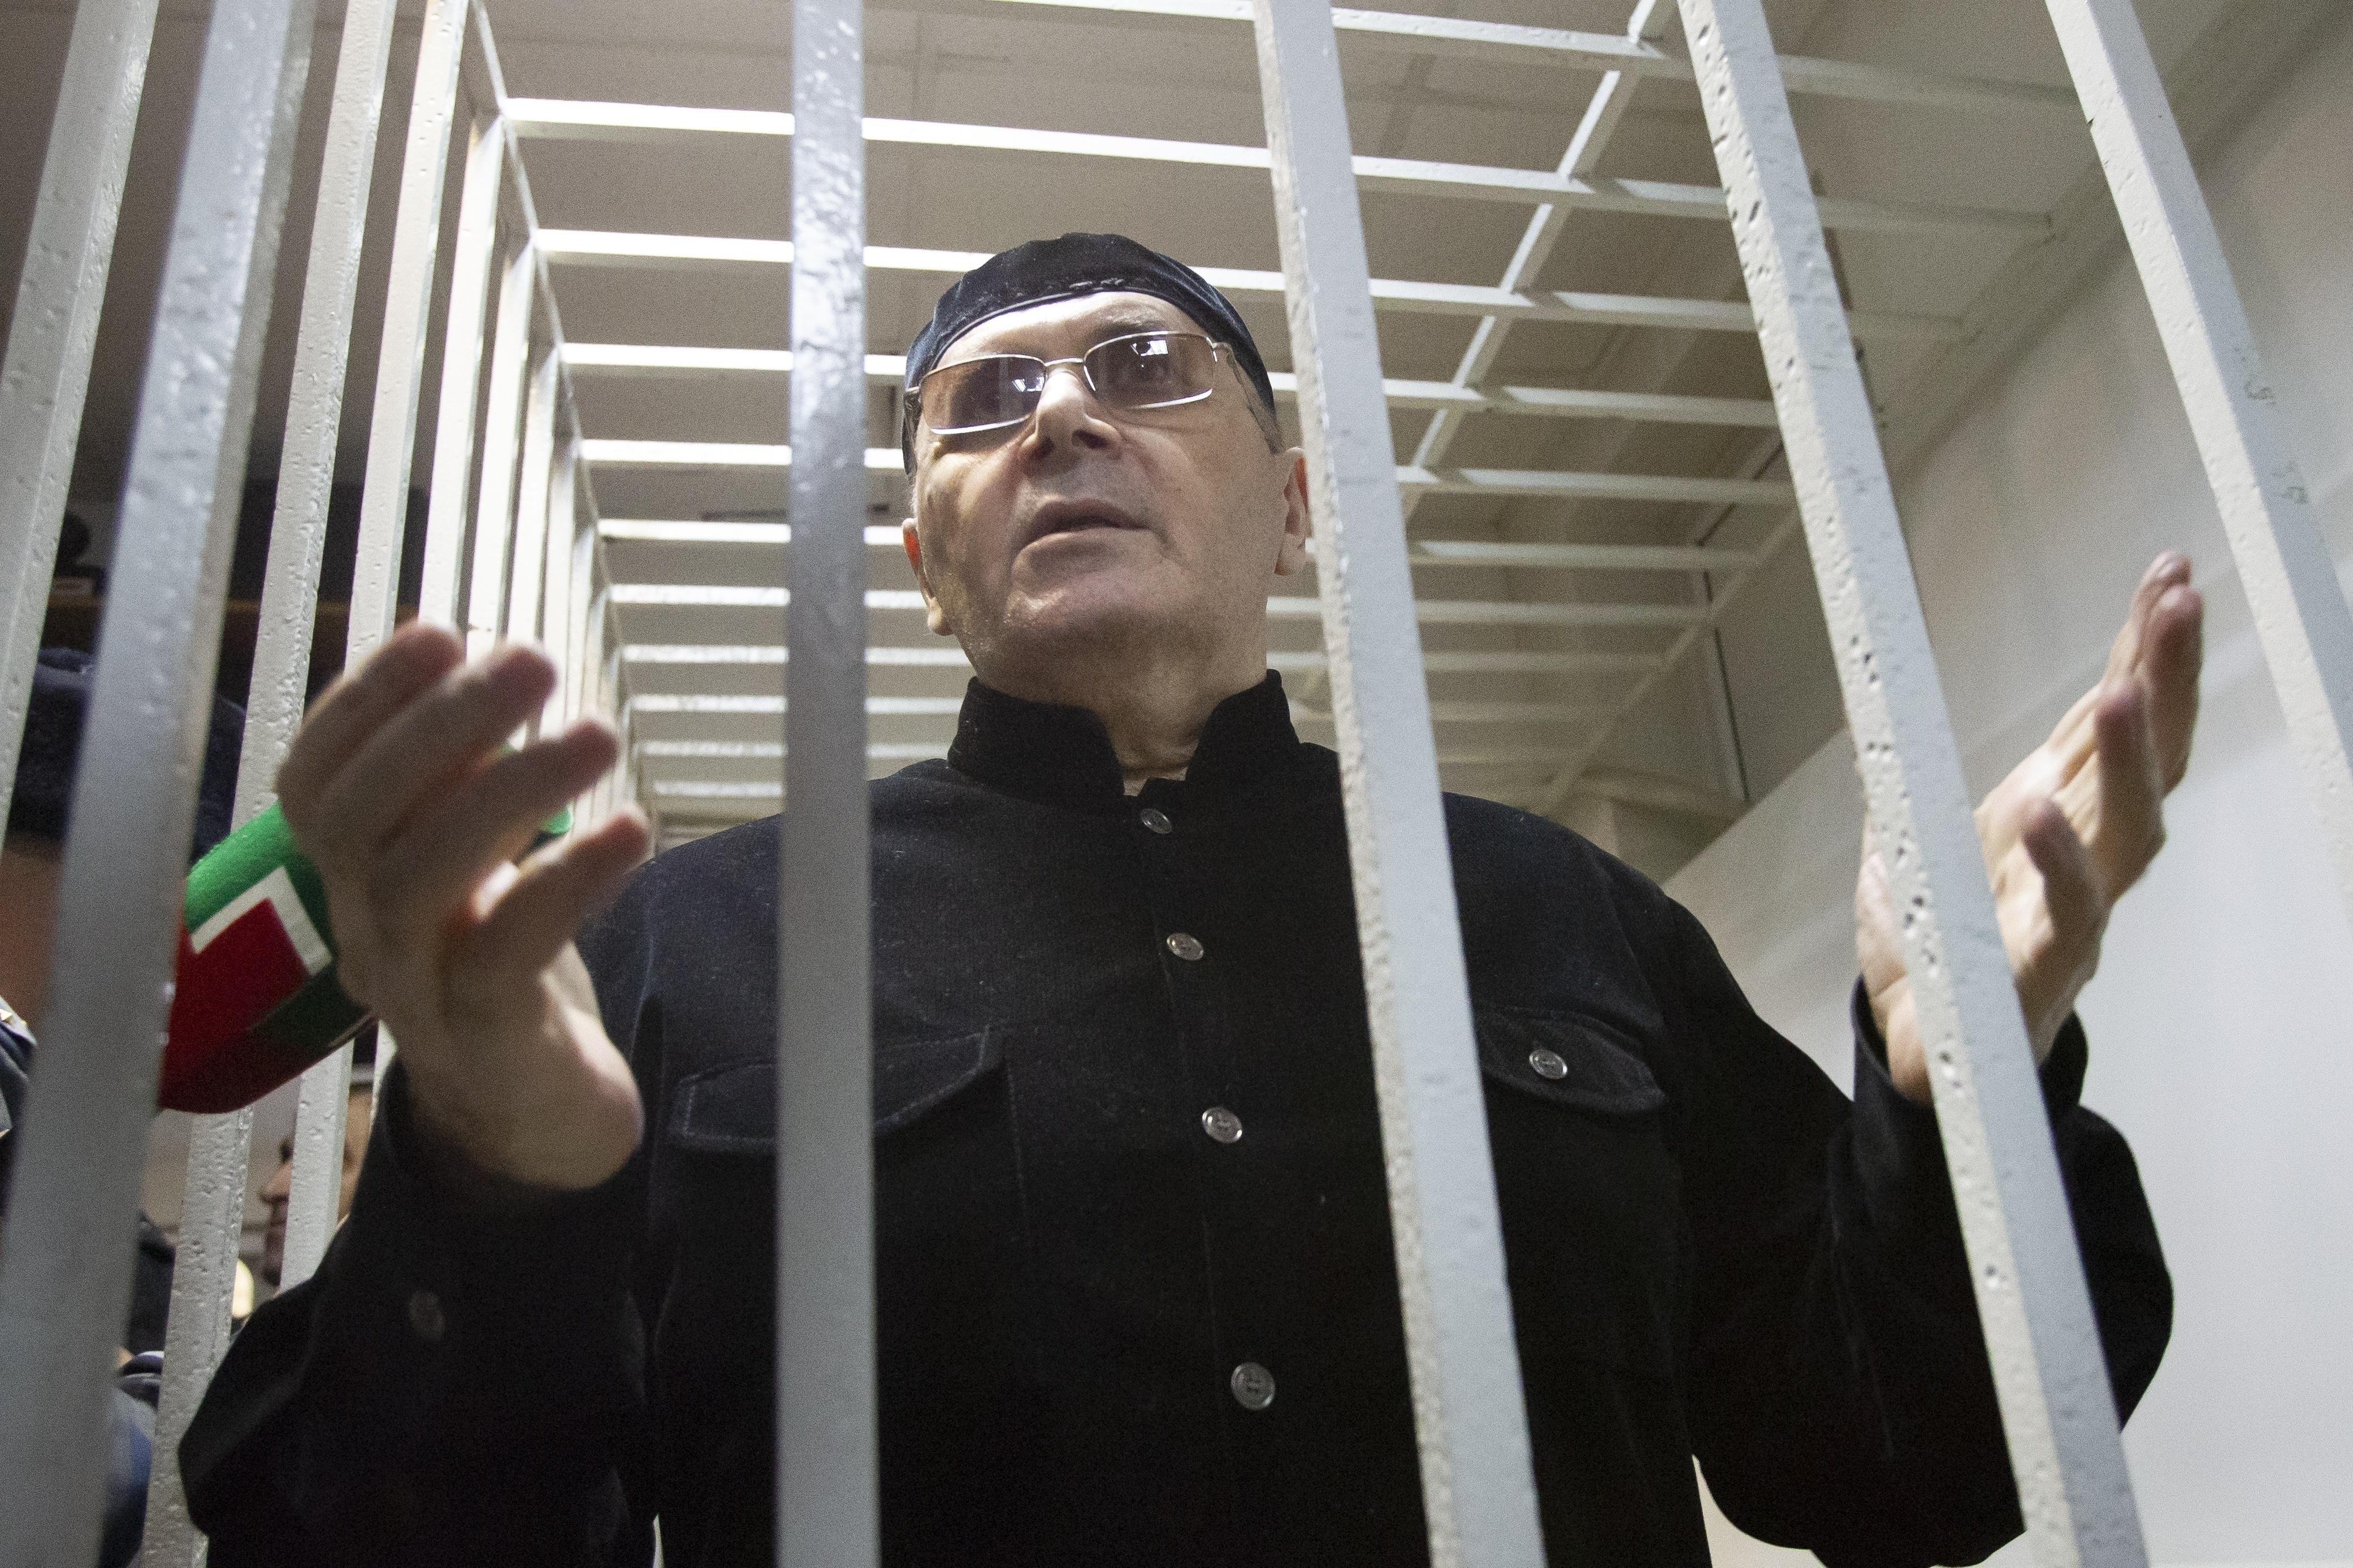 Rights activist in Chechnya gets parole on drug sentence